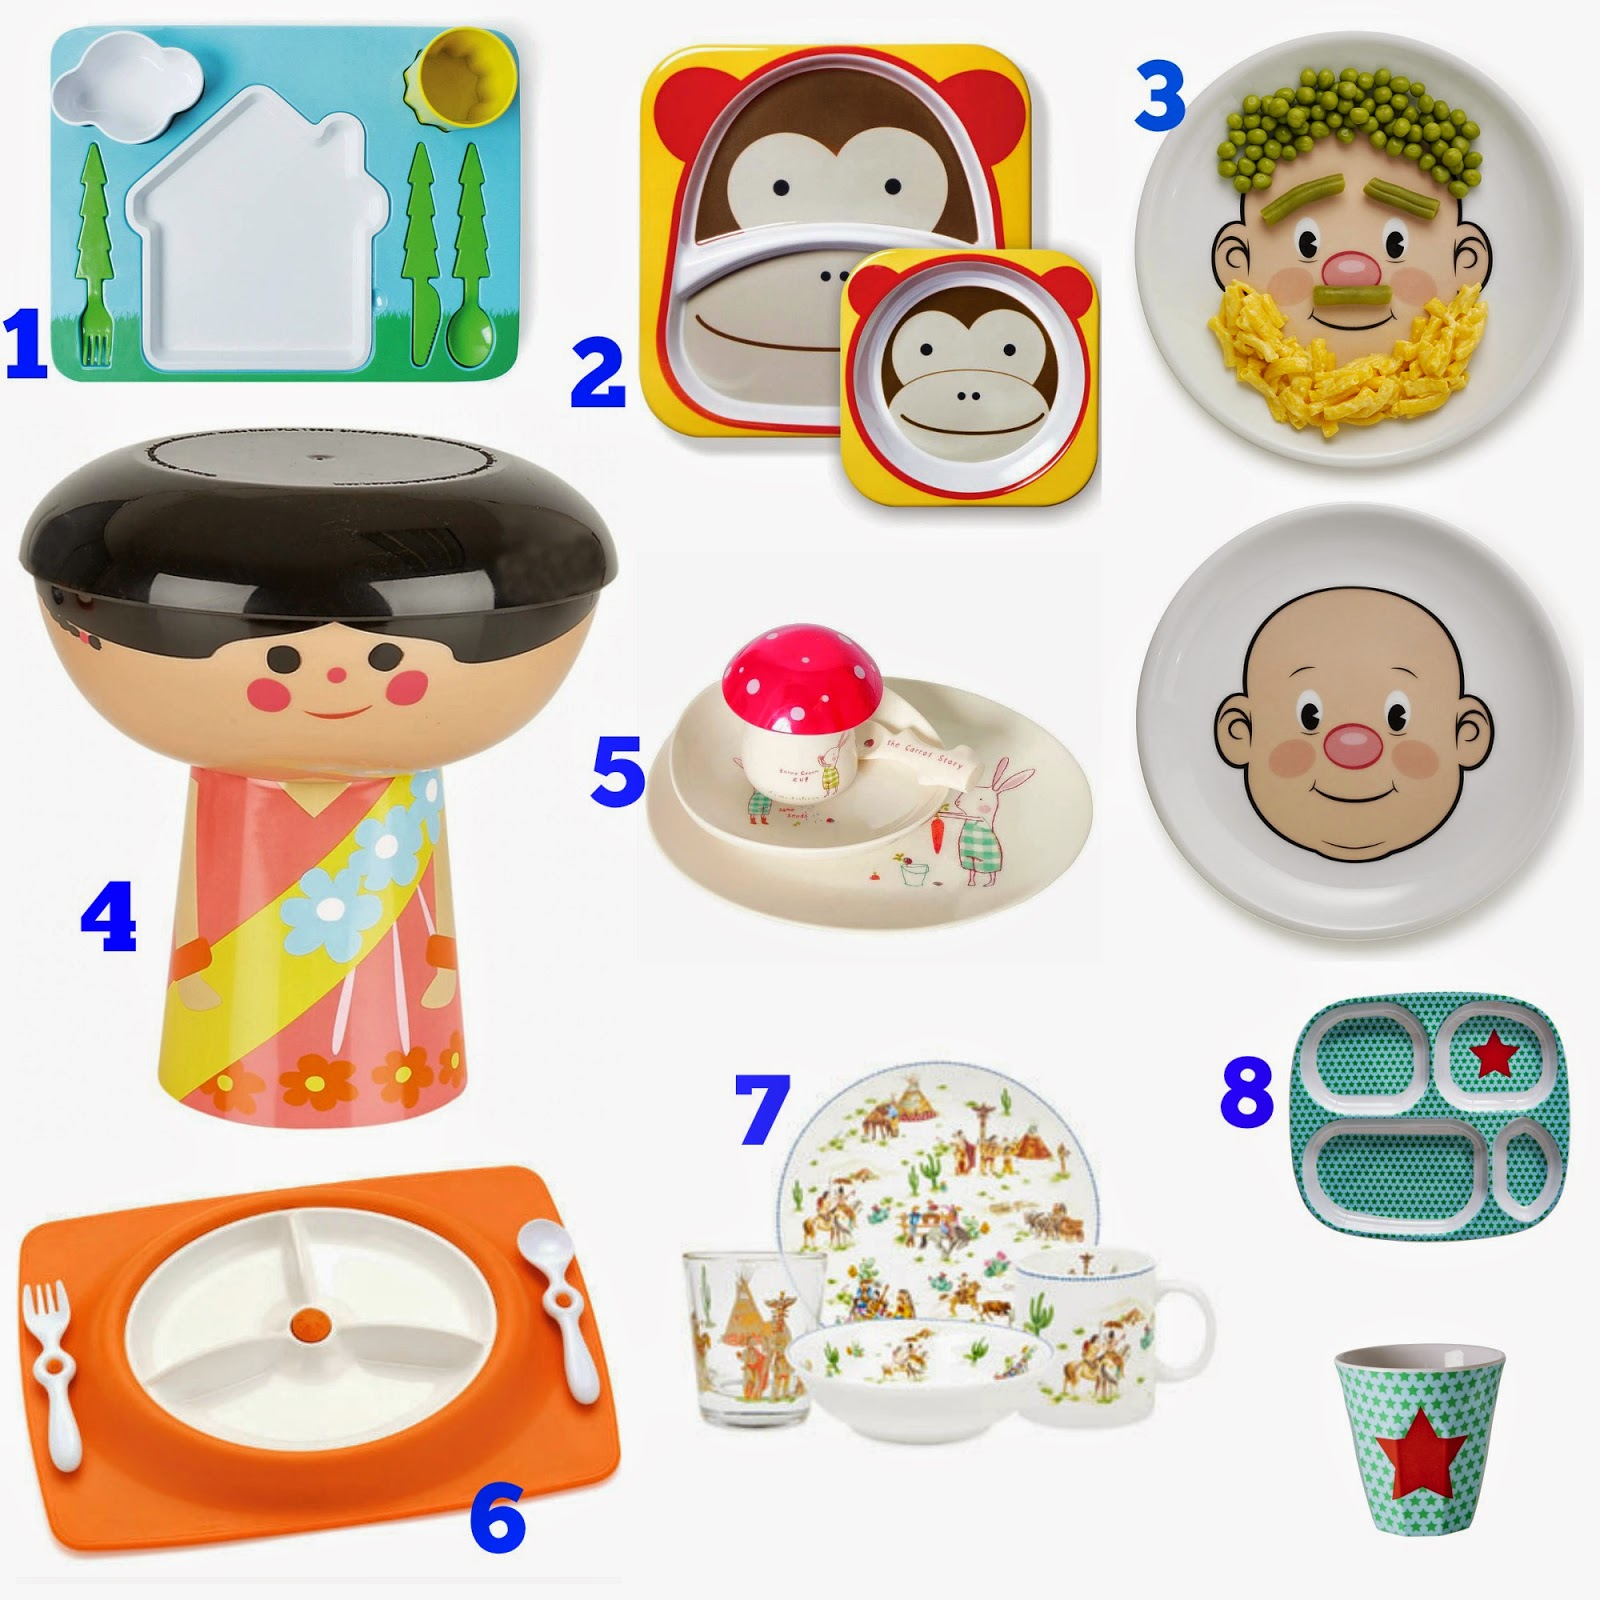 8 cool toddler dinner plates from £1.99 | dinner ware | plates | toddler meals | melamine plates | kids dinners | jamie oliver | annabel kramel | ella kitchen | zara | mail peg | skip hop | bake | cooking | dinner time | snacks | toddler meals | plates | beakers | cutlet | food plate | fred and friends | china | cup | meals | mamas VIB